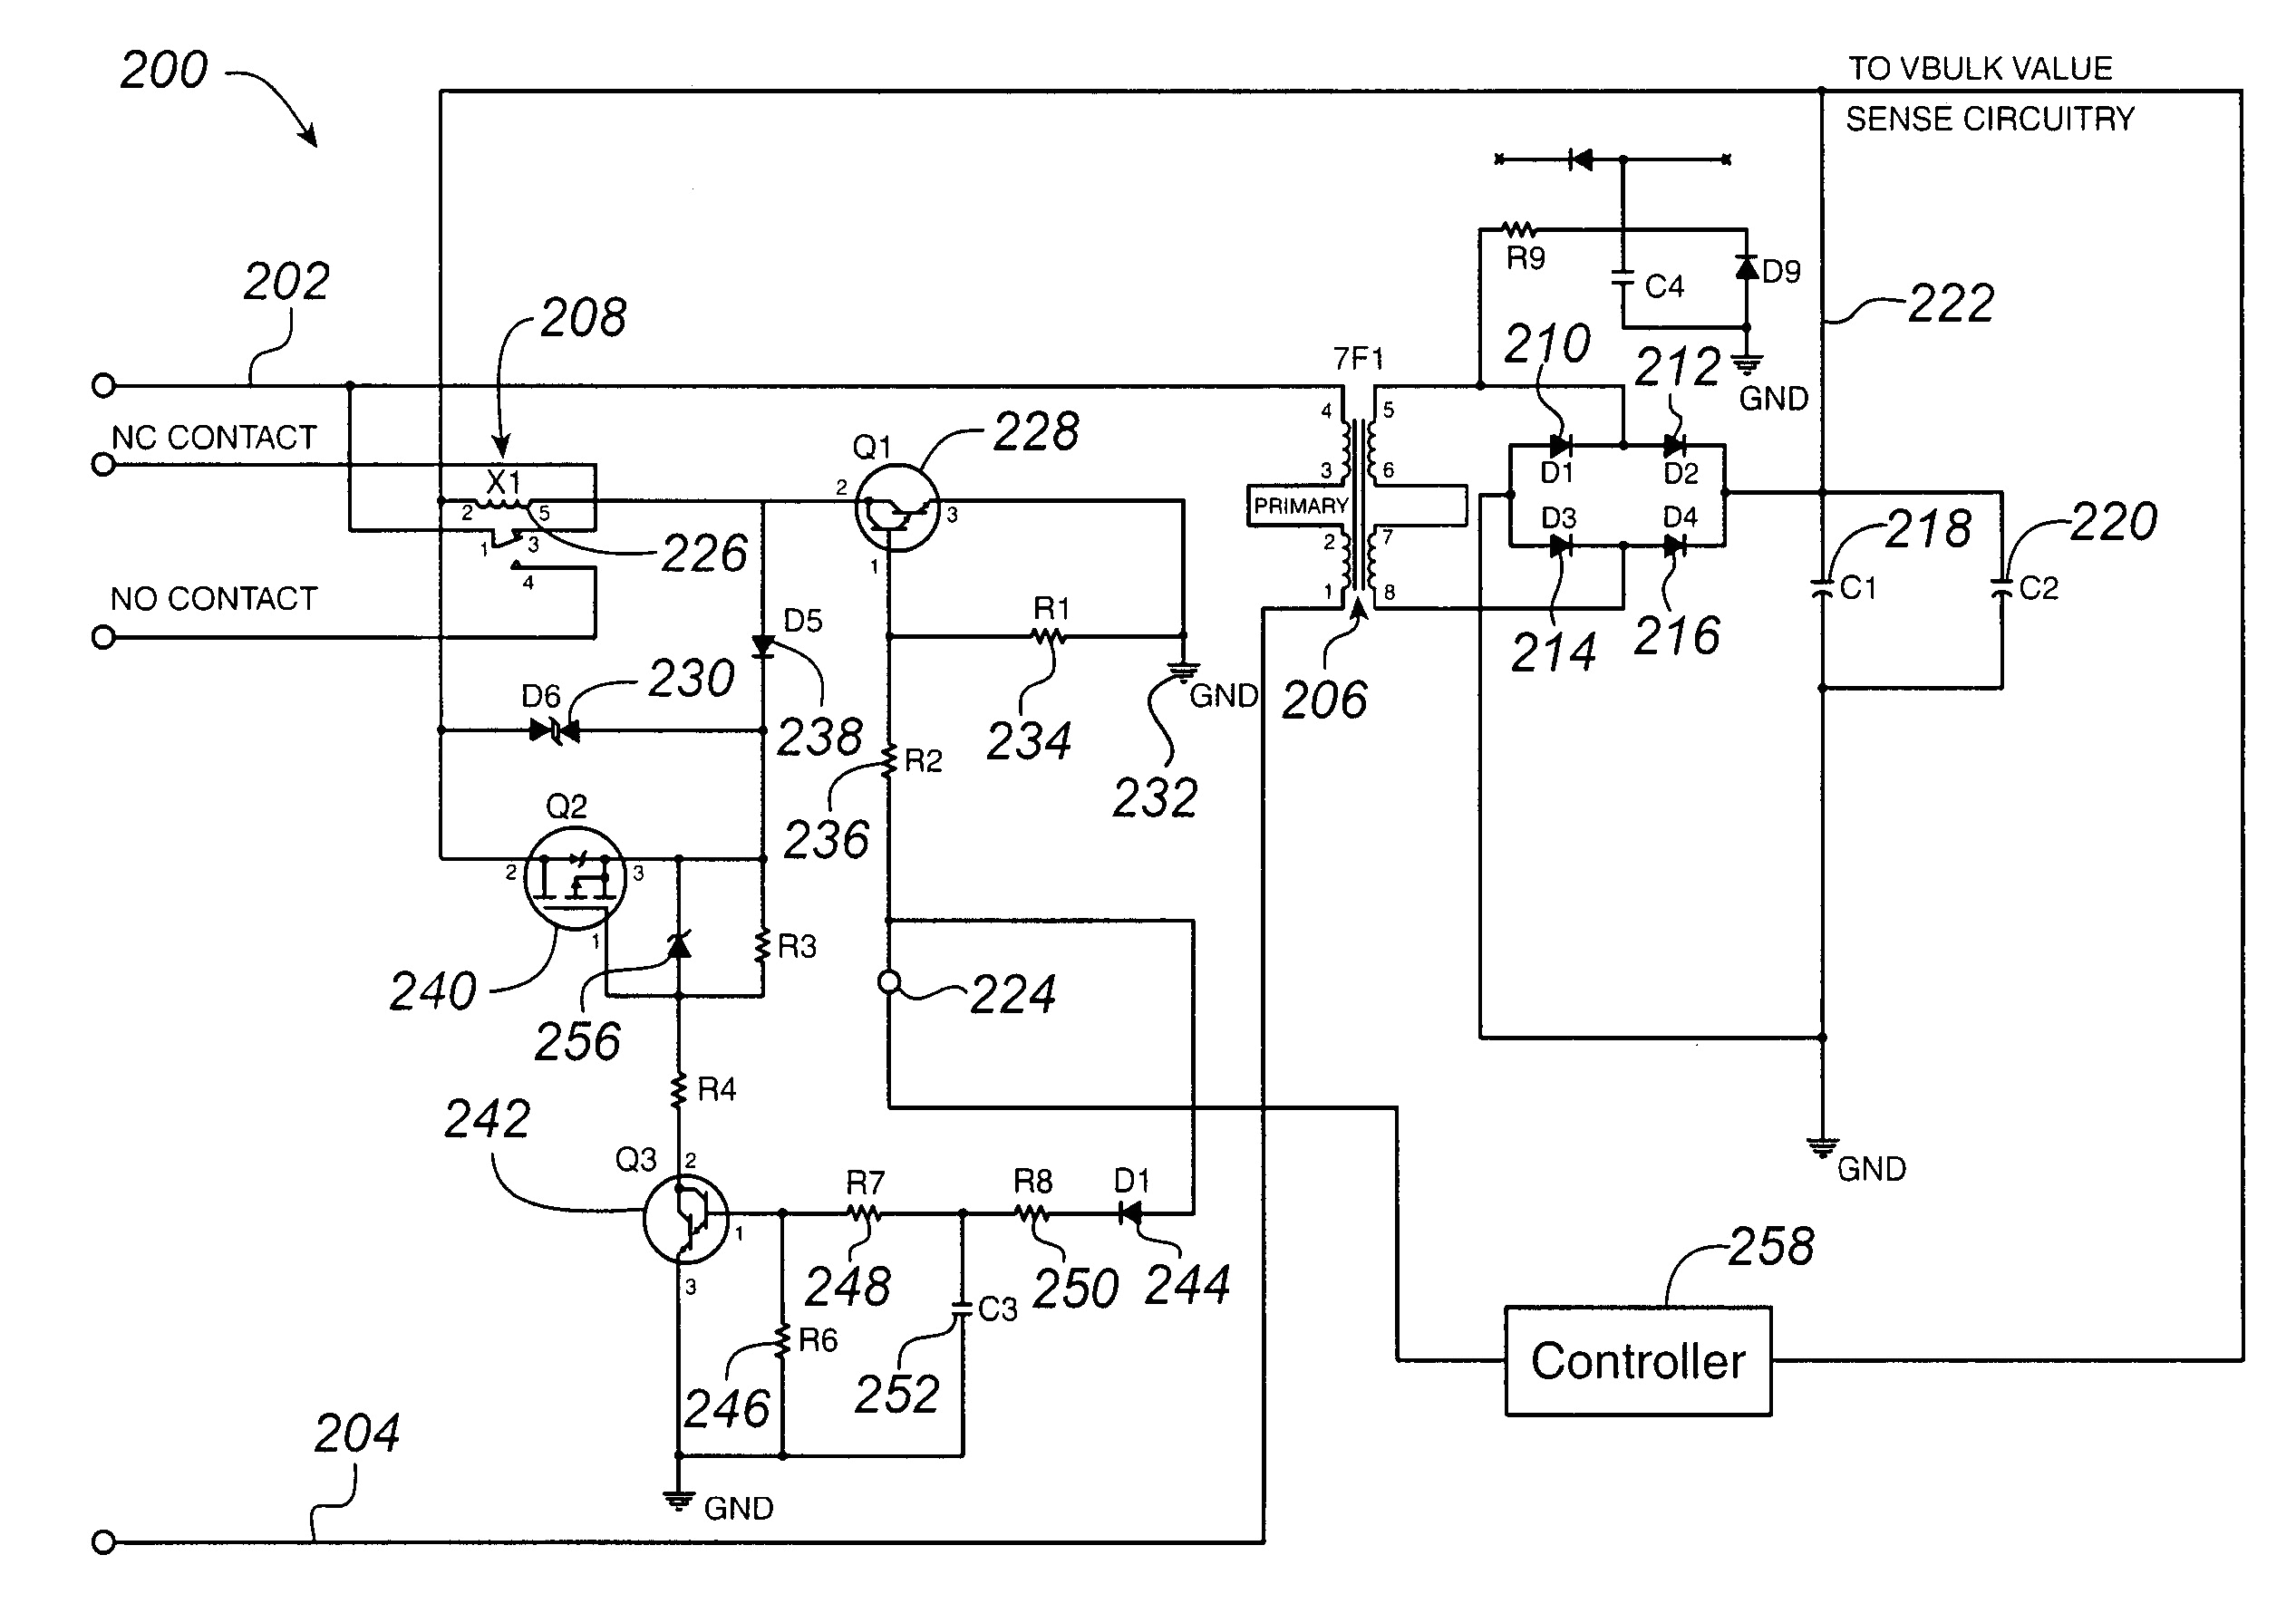 wiring diagram for a walk in cooler freezer free download wiring wiring diagram for a walk in cooler freezer free download wiring